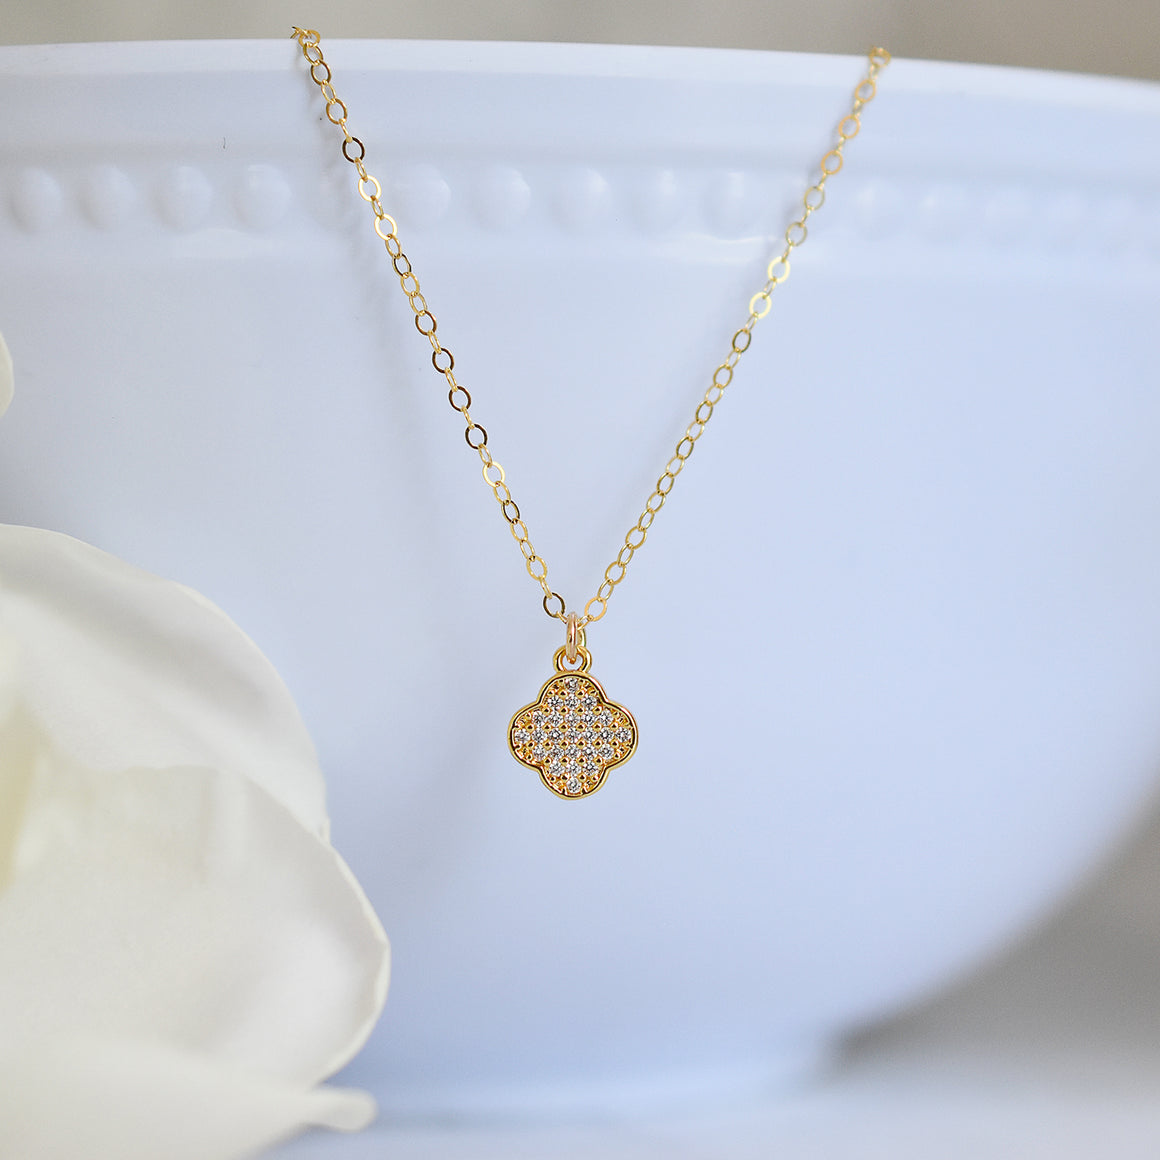 Sparkly Gold Clover Necklace